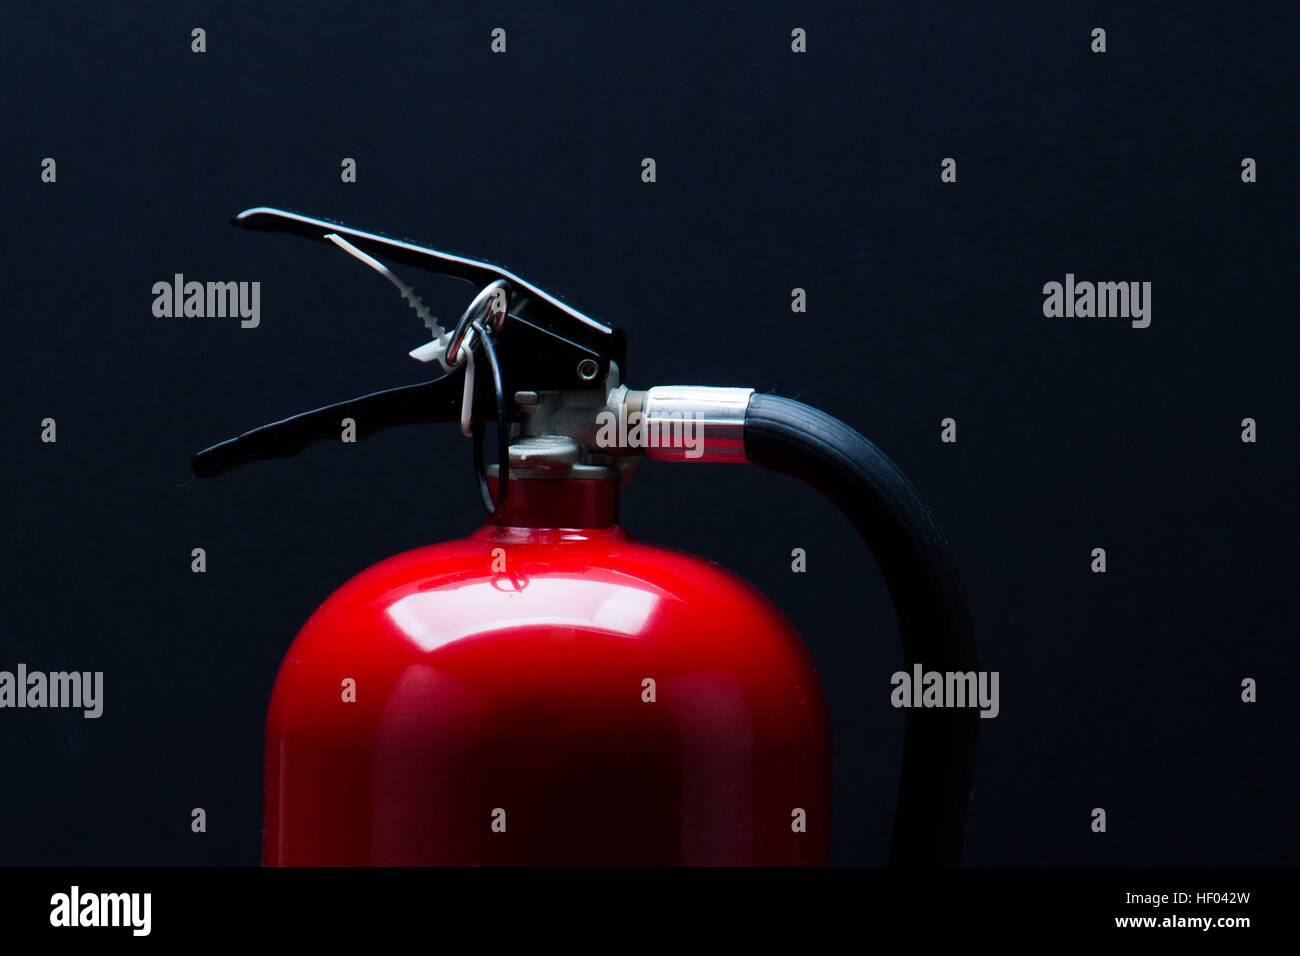 Fire Safety - Stock Image